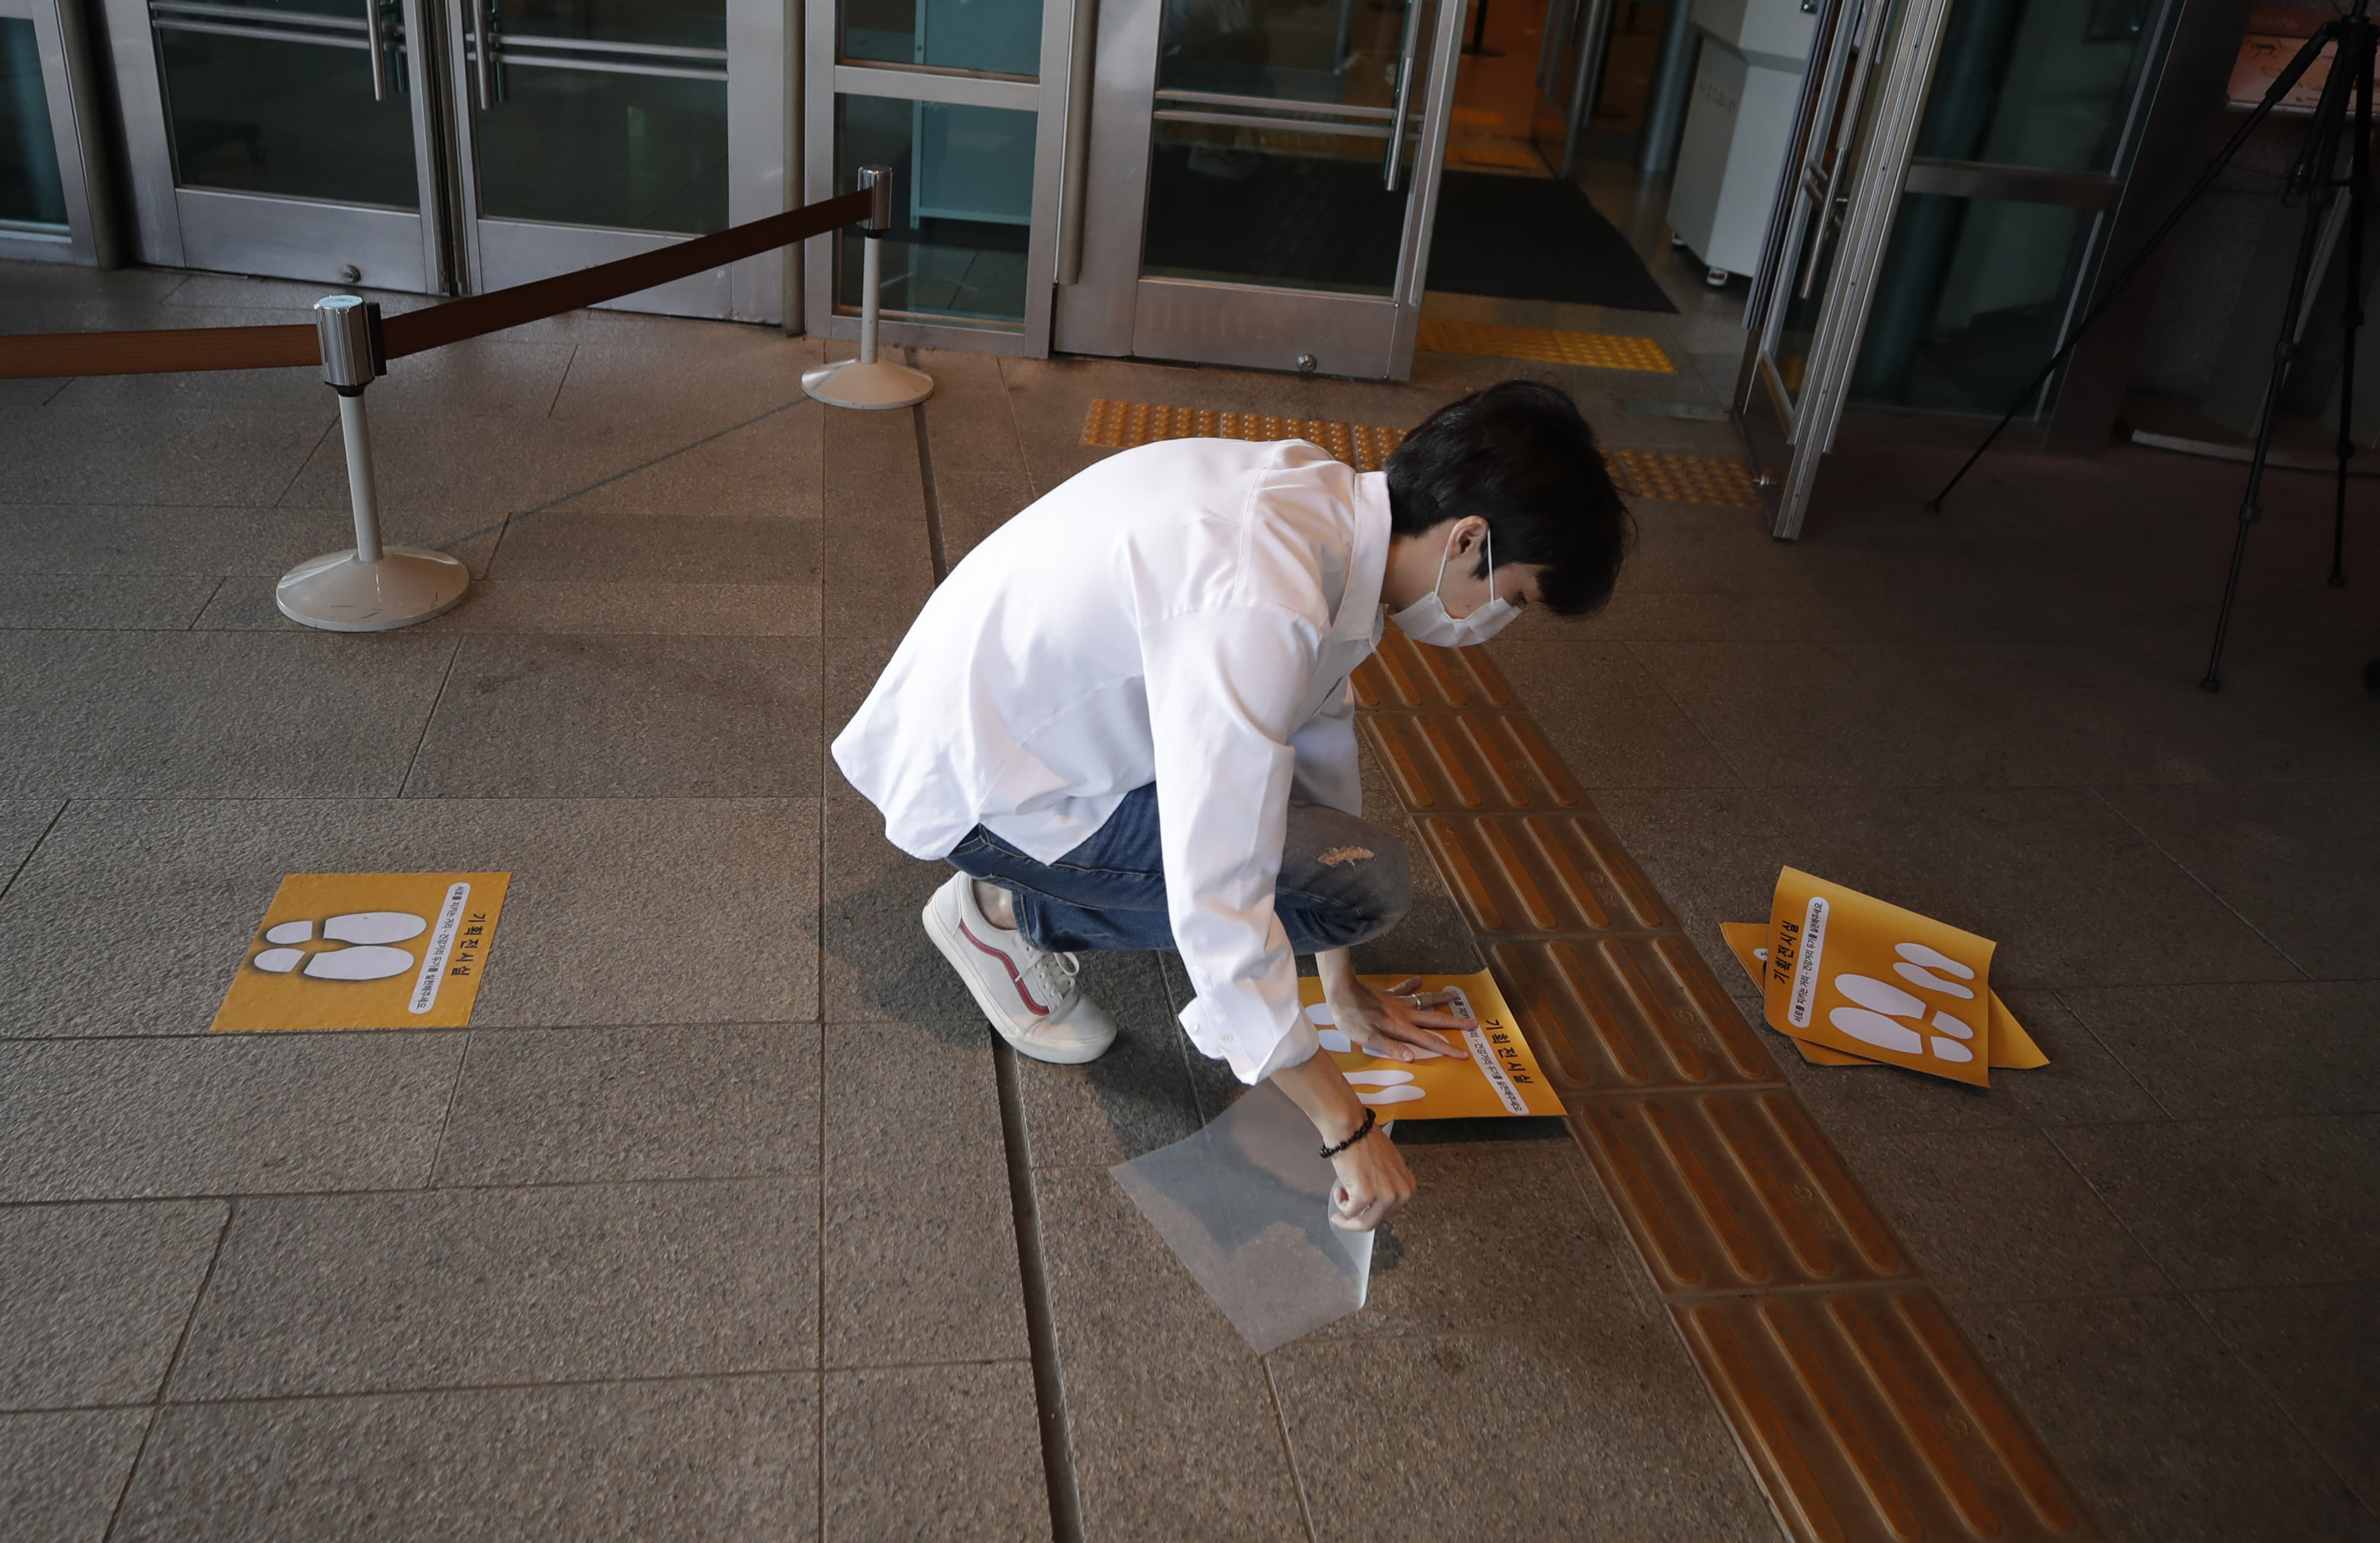 A man wearing a face mask attaches social distancing signs on the floor at the National Museum of Korea in Seoul, South Korea, Monday, Sept. 28, 2020. The museum reopened Monday after having been closed for six weeks as a precaution against the coronavirus. (AP Photo/Lee Jin-man)